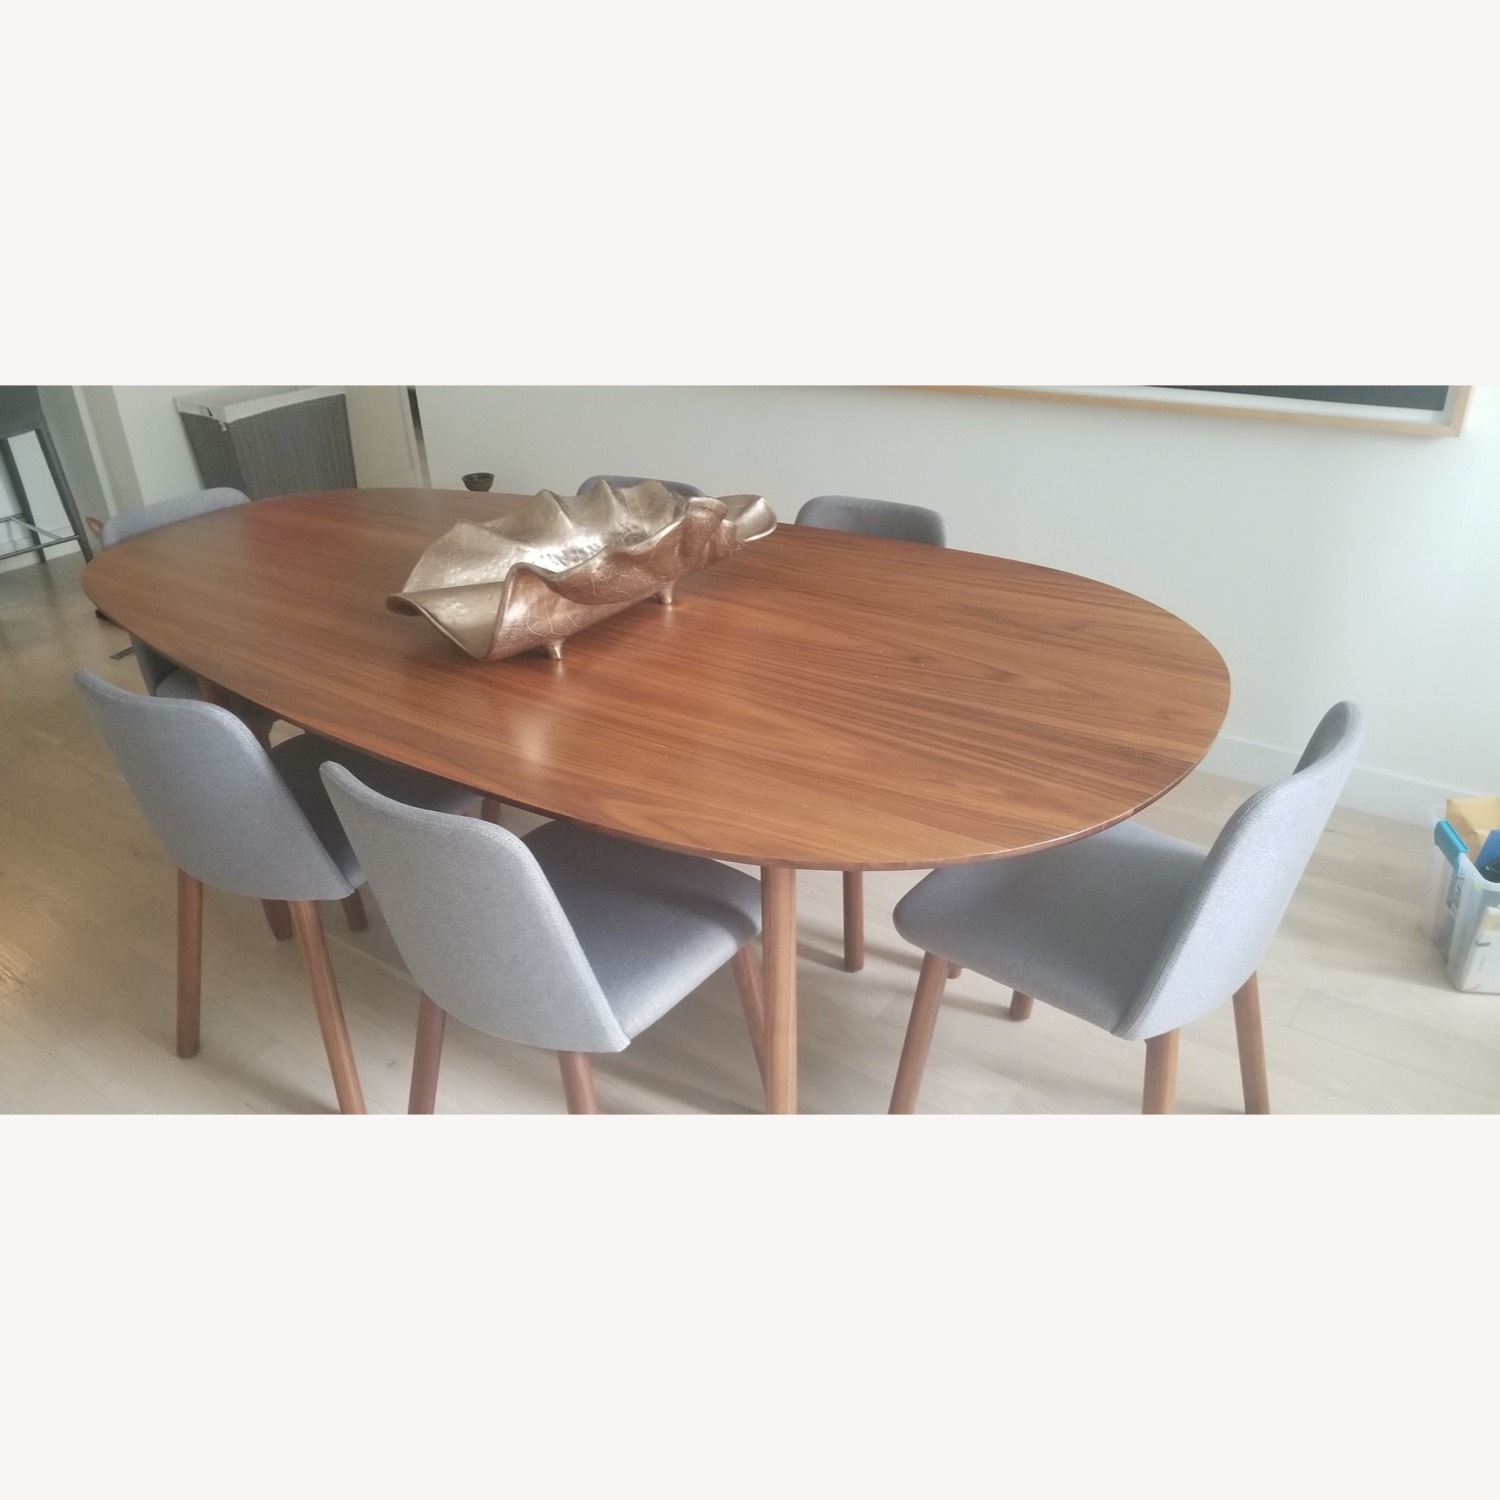 Blue Dot Dining Set with 6 Chairs - image-1